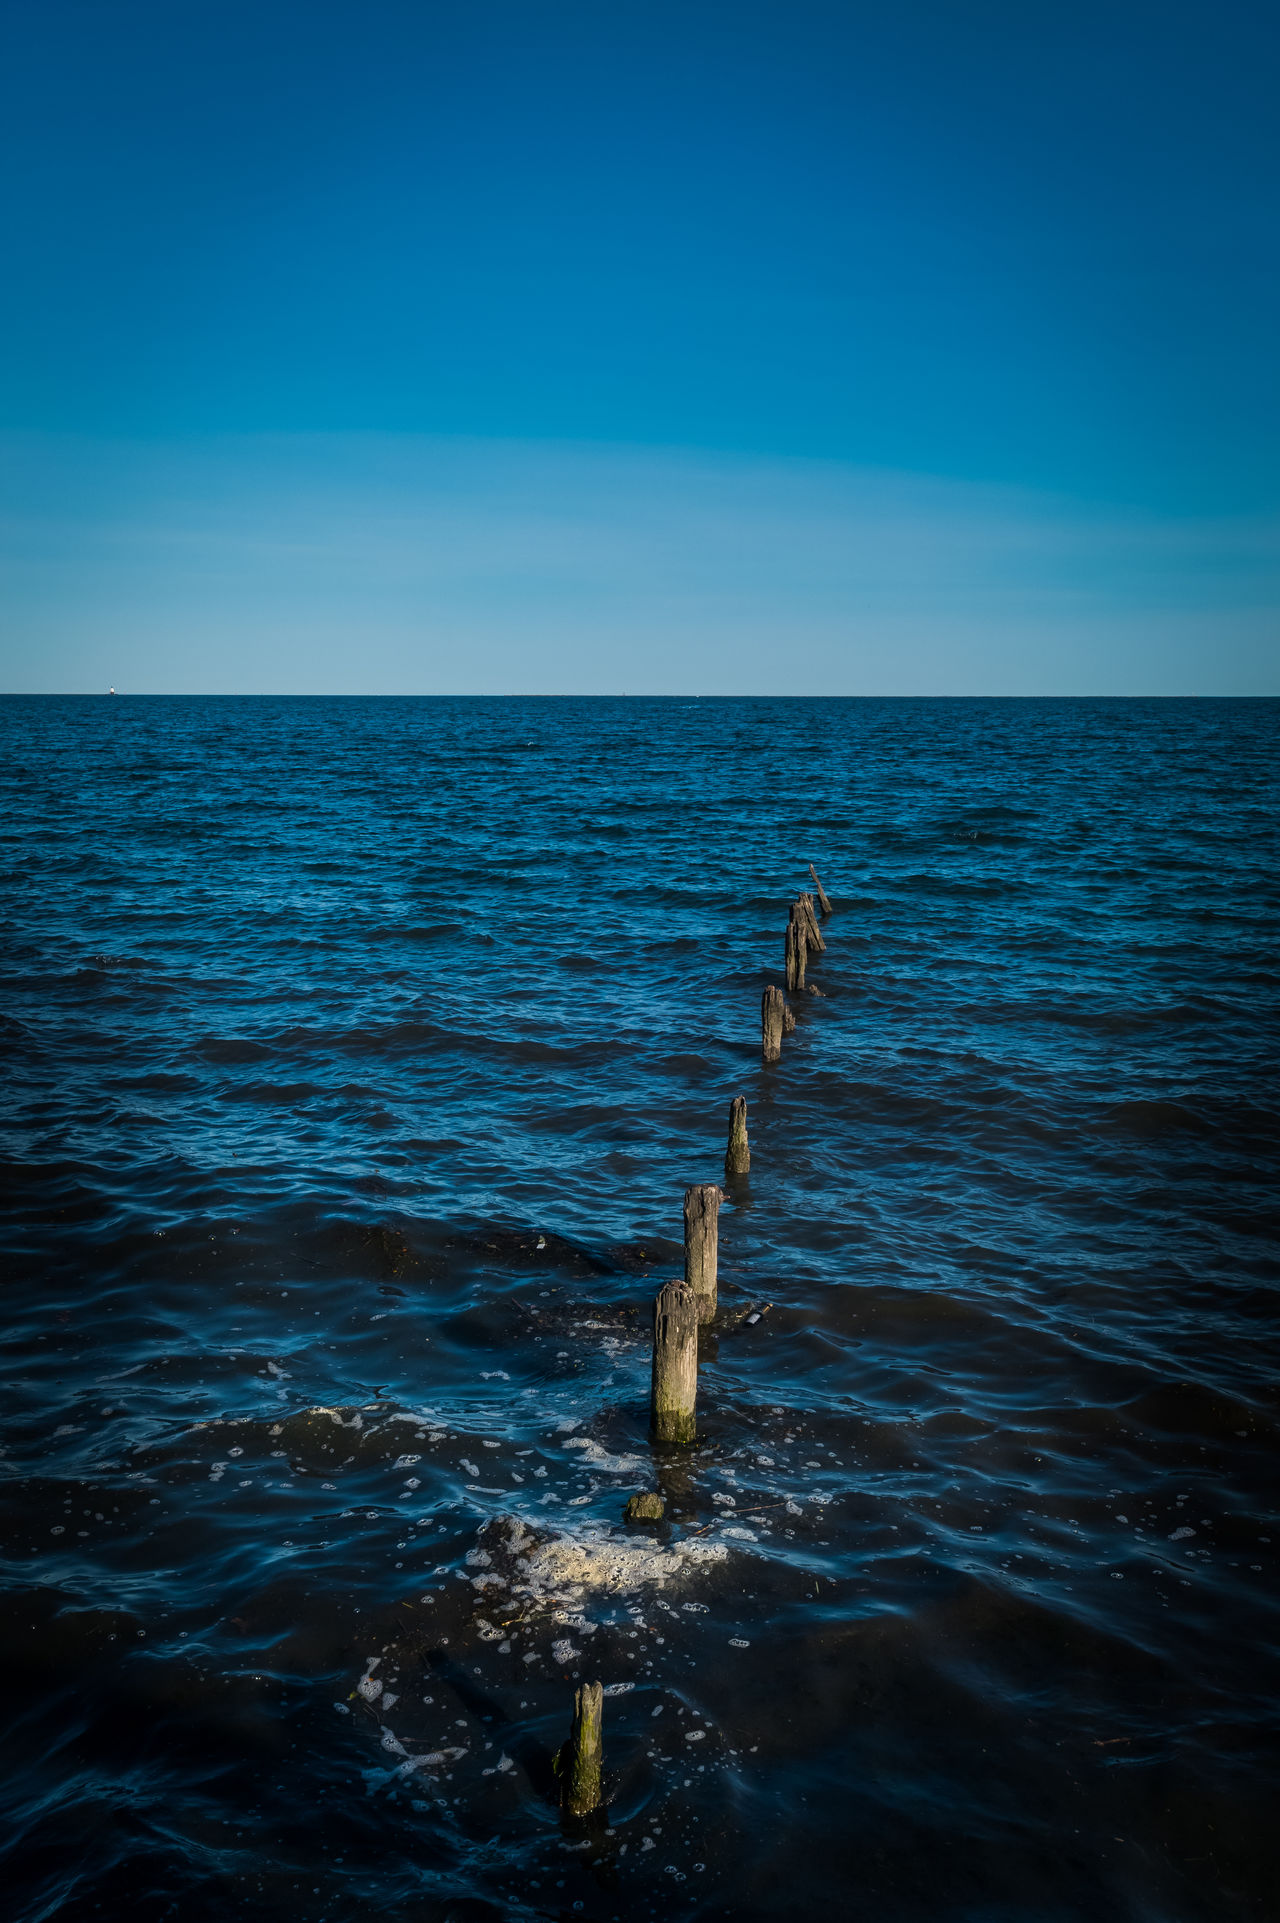 High Tide Beauty In Nature Blue Clear Sky Connecticut Day Horizon Over Water Nature New England  No People Outdoors Pilón Scenics Sea Selfie Sky So Tranquil Scene Tranquility Water Winter